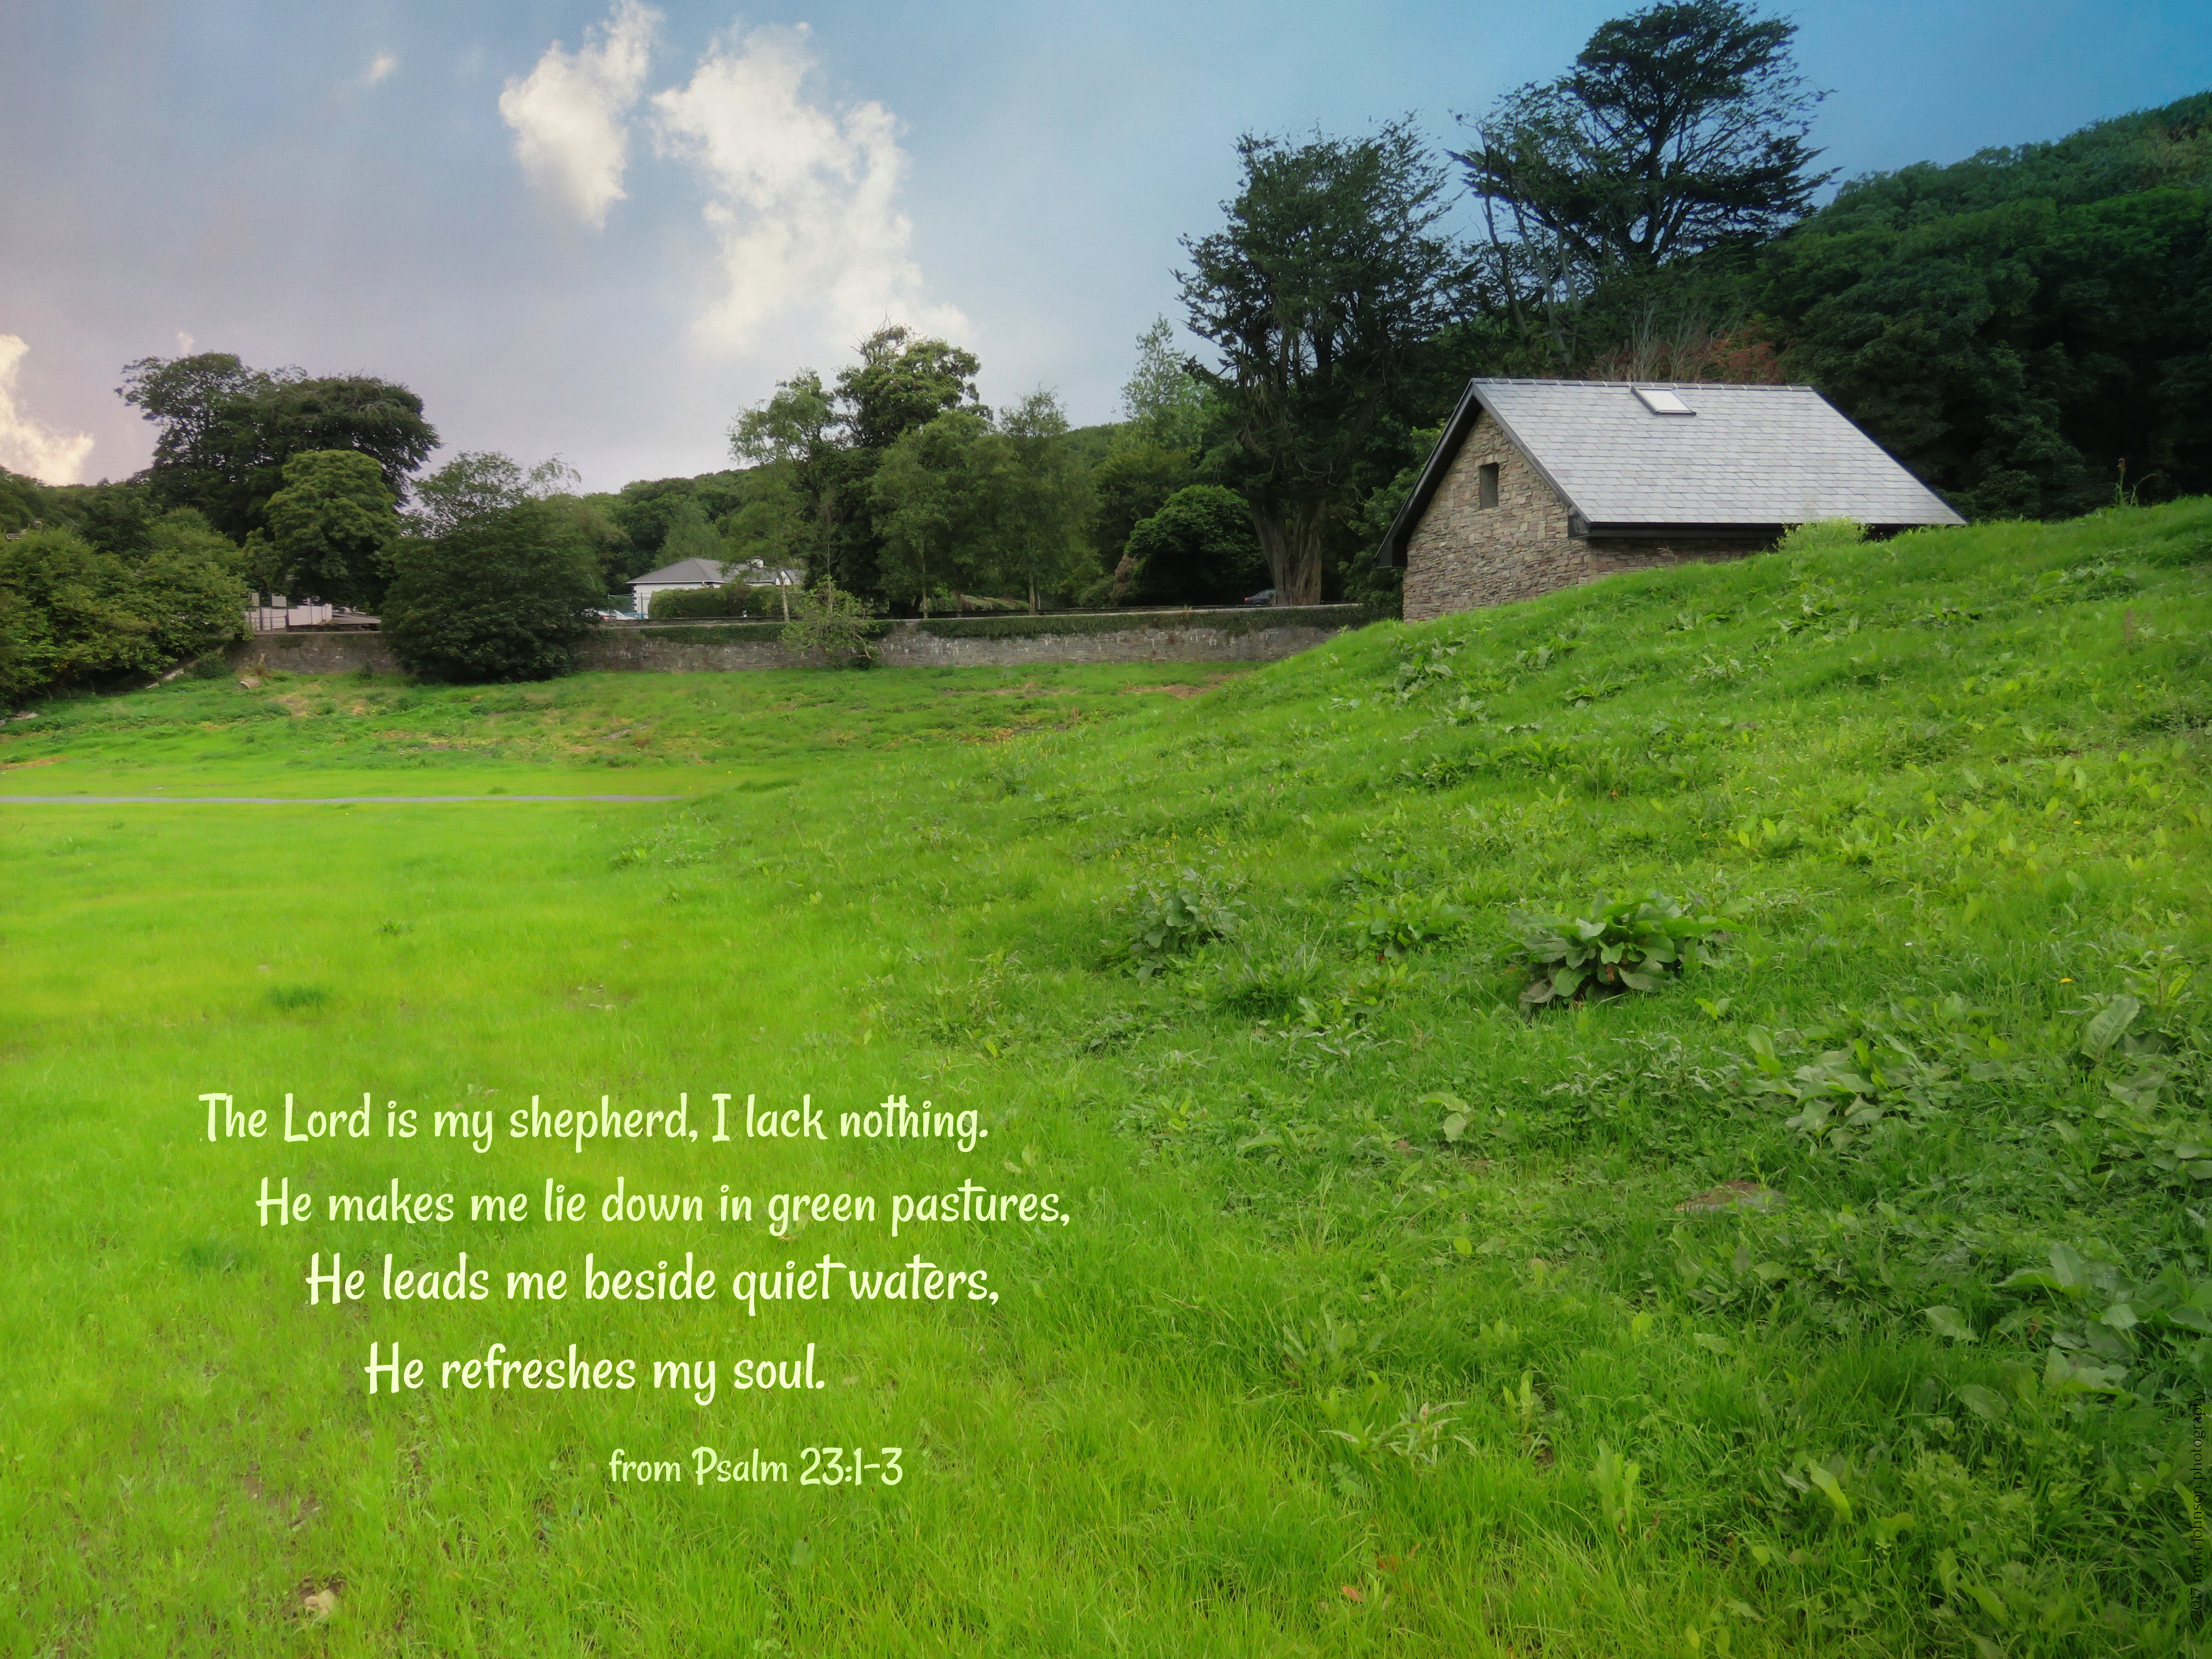 Are You Always Searching for Greener Pastures, Based on ...